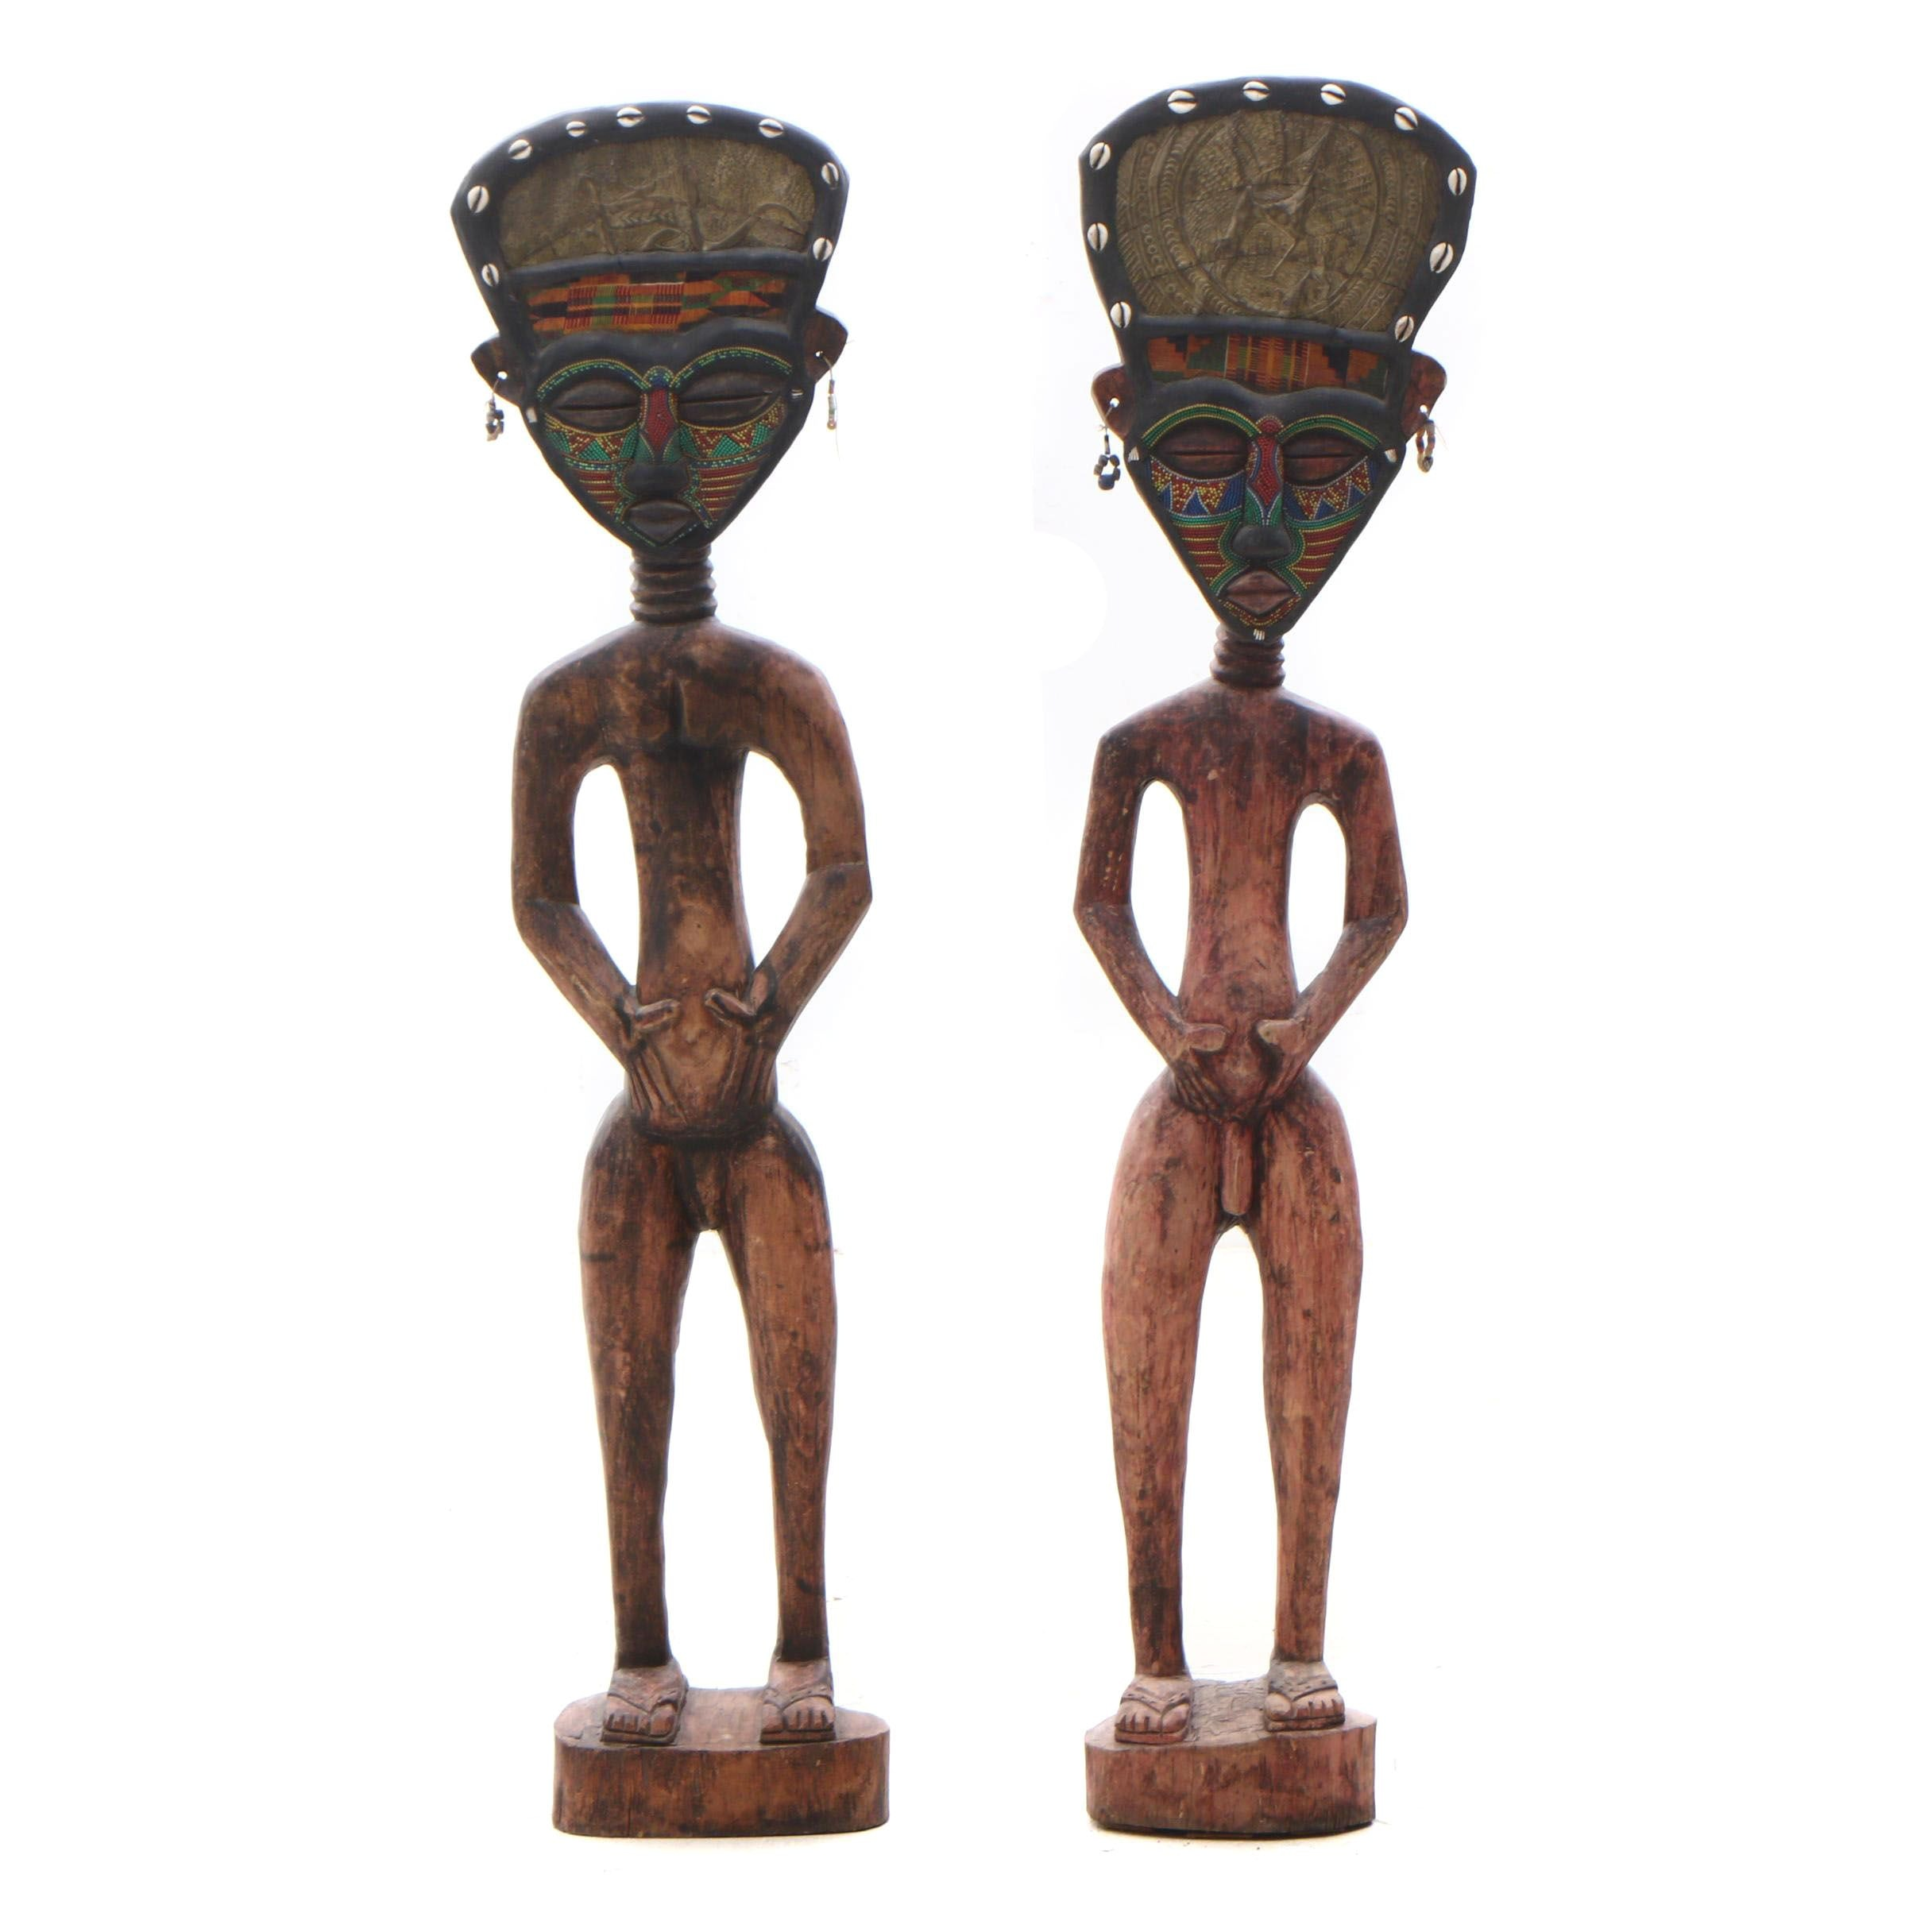 Carved African Style Fertility Figurines, Contemporary